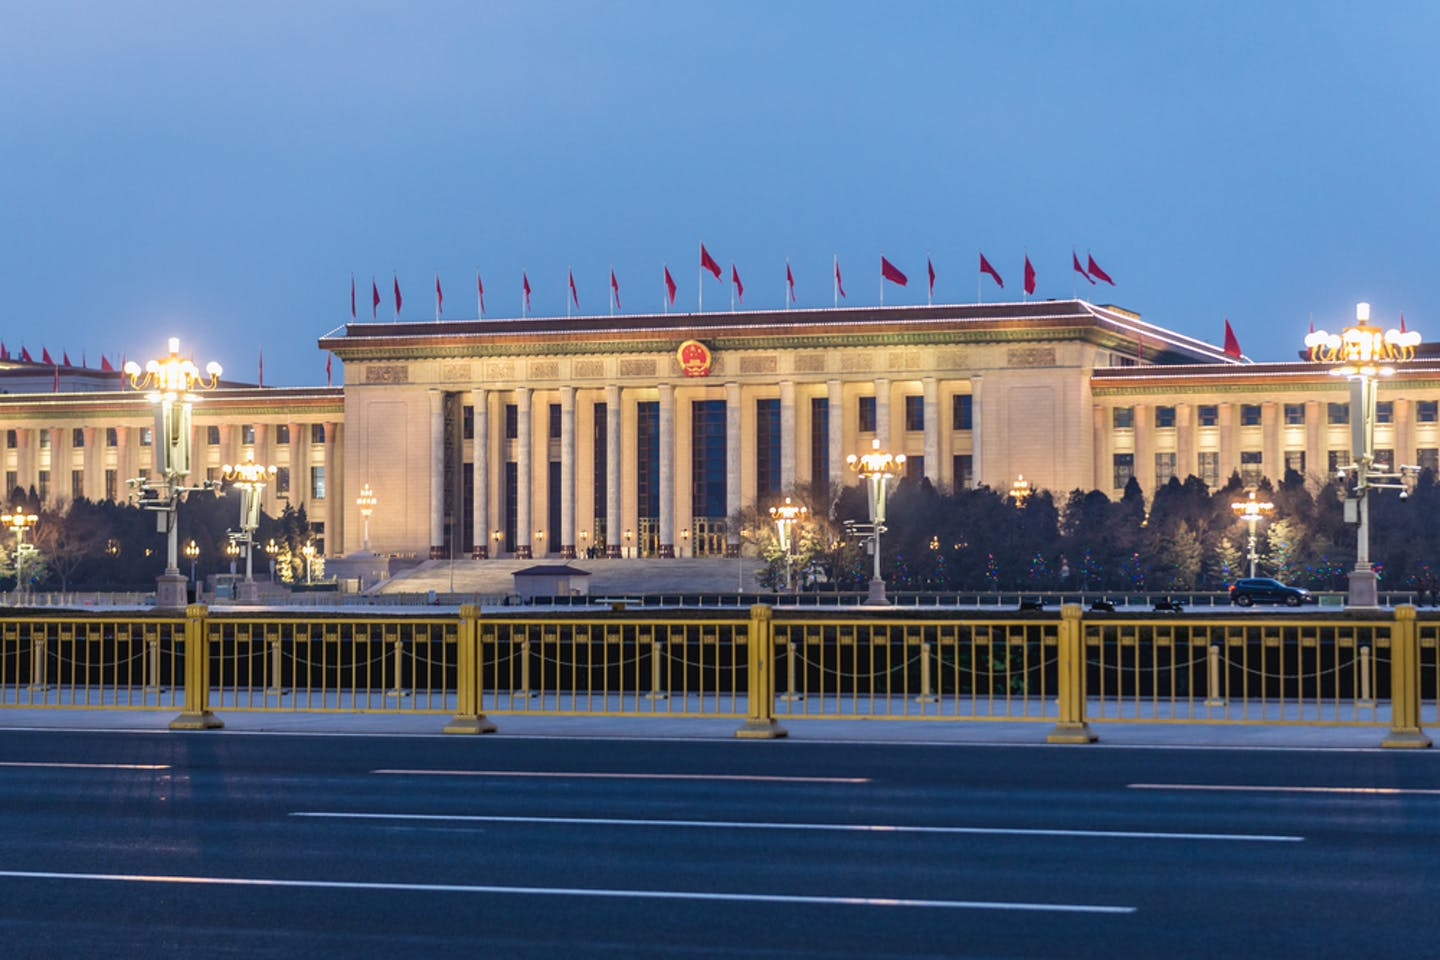 Beijing's Hall of the People